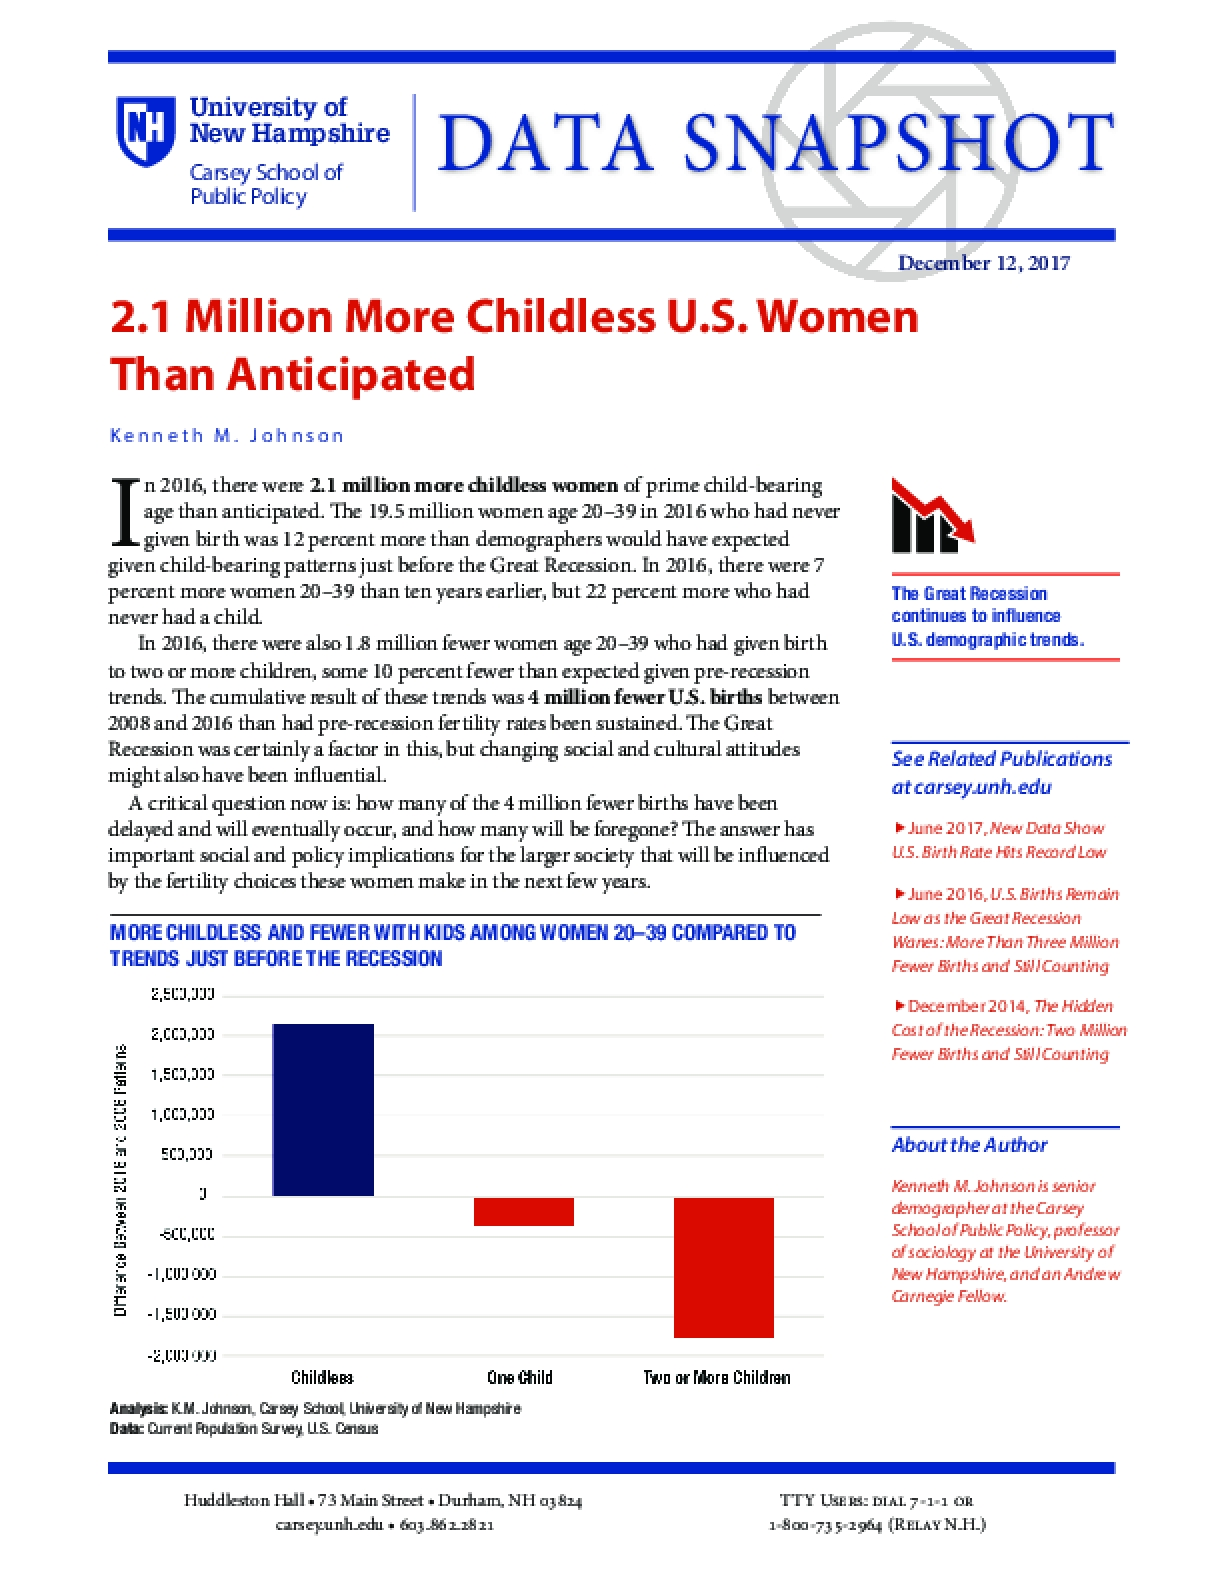 Data Snapshot: 2.1 Million More Childless U.S. Women Than Anticipated